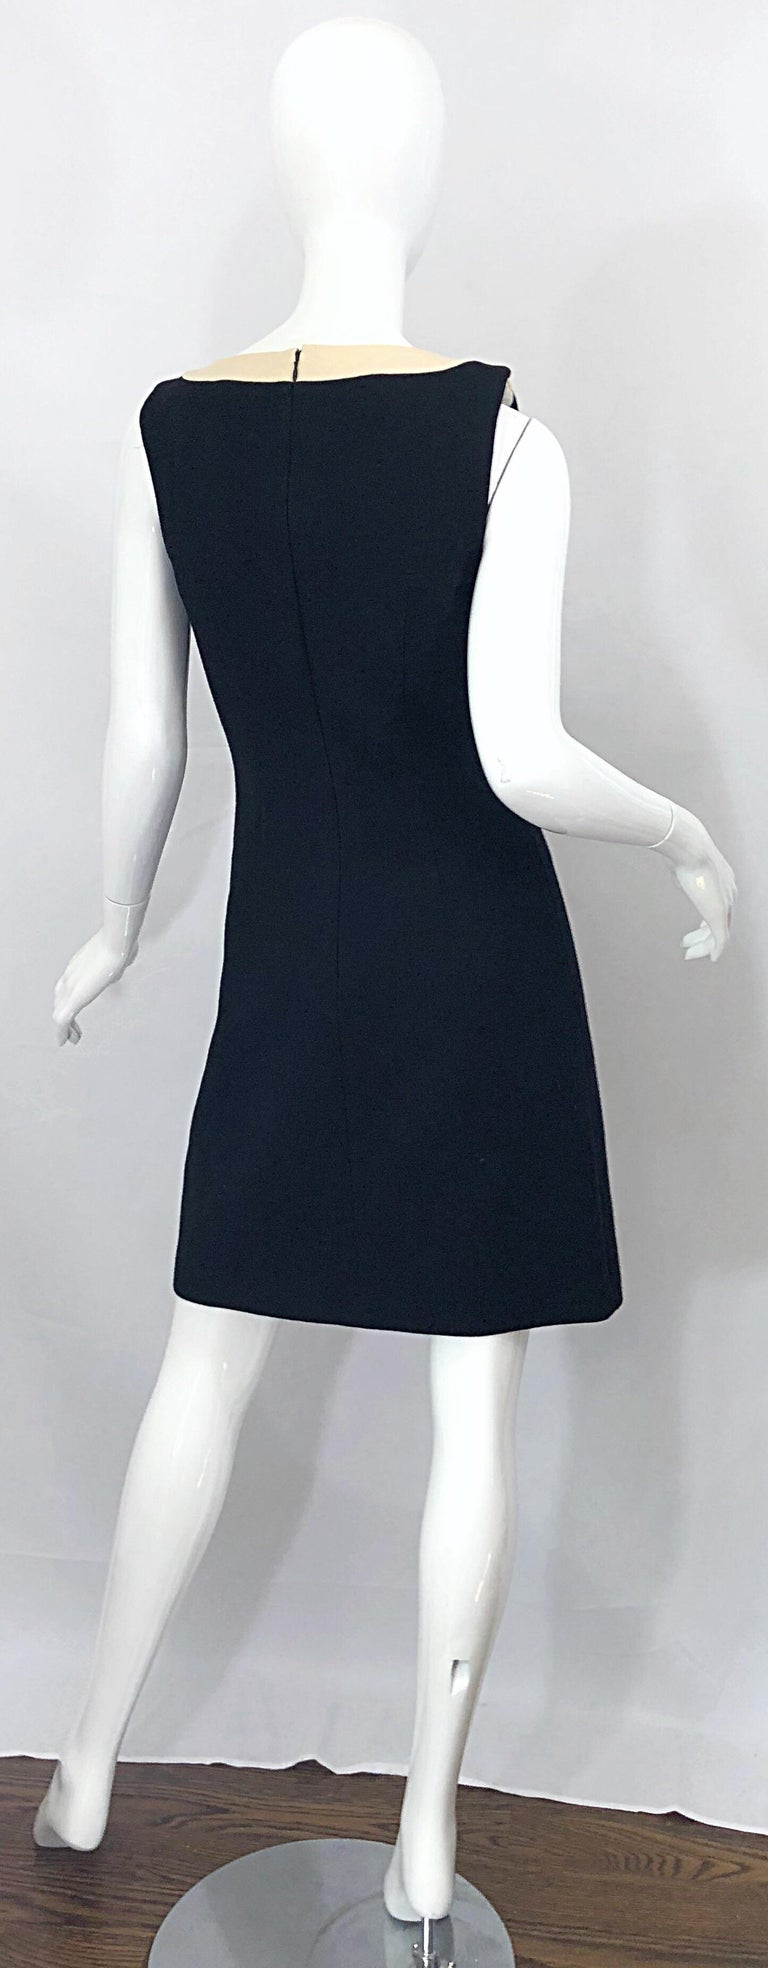 Dolce & Gabbana Size 42 / US 6 Black and Ivory 1990s Does 1960s Wool Shift Dress For Sale 1